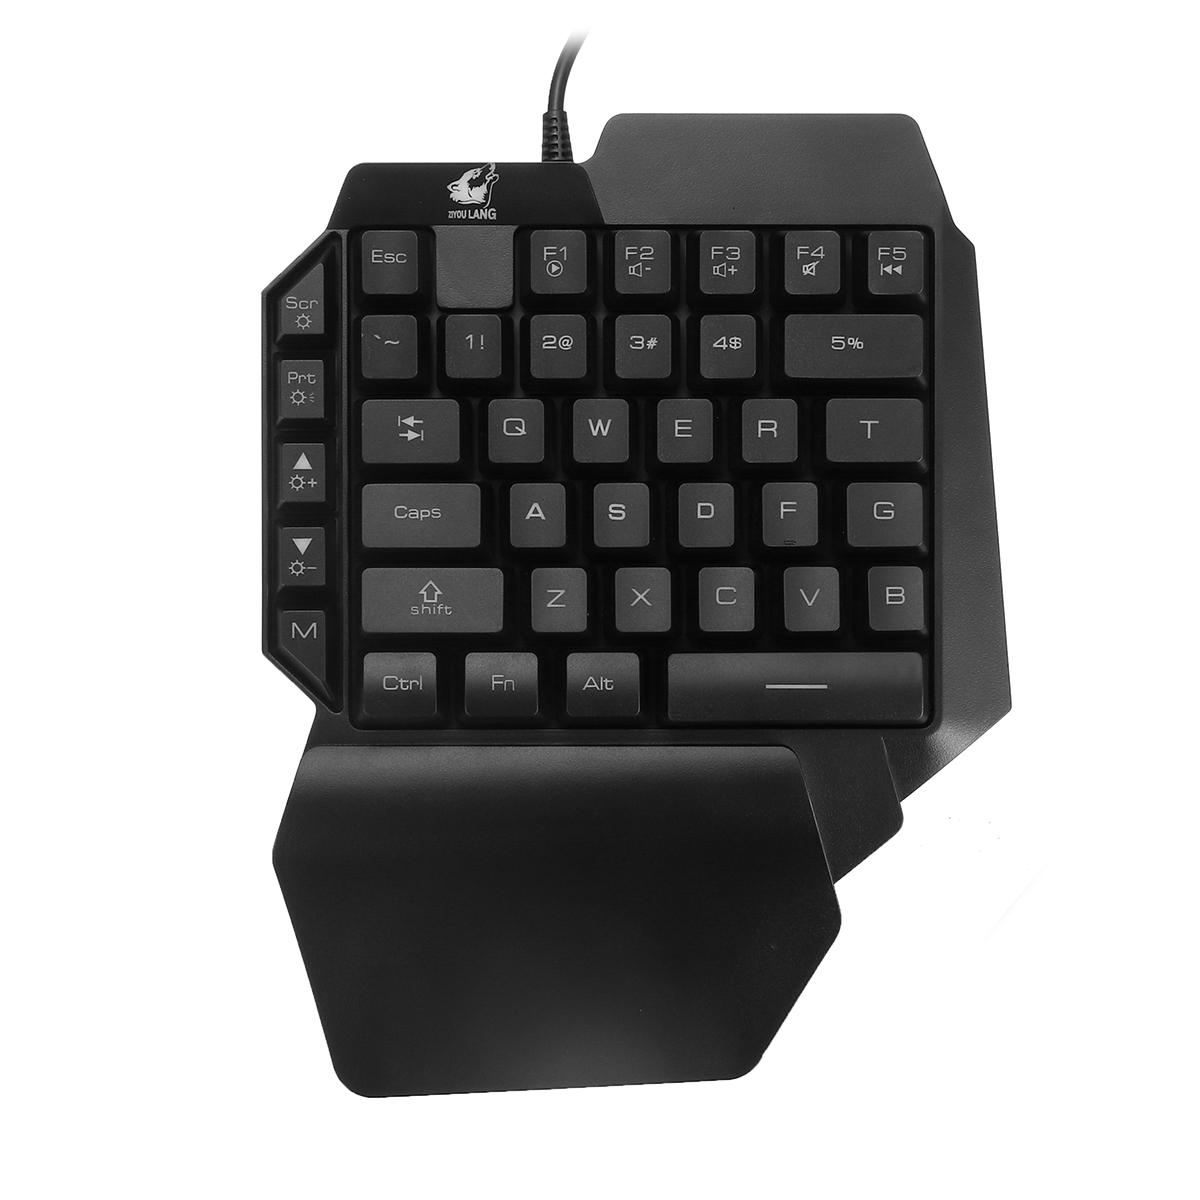 Keyboard Mechanical Hand Punk Keyboard USB Cable Game Peripherals Single Keyboard Game Color : Gray Black Orange Yellow Light Office Eat Chicken Keyboard